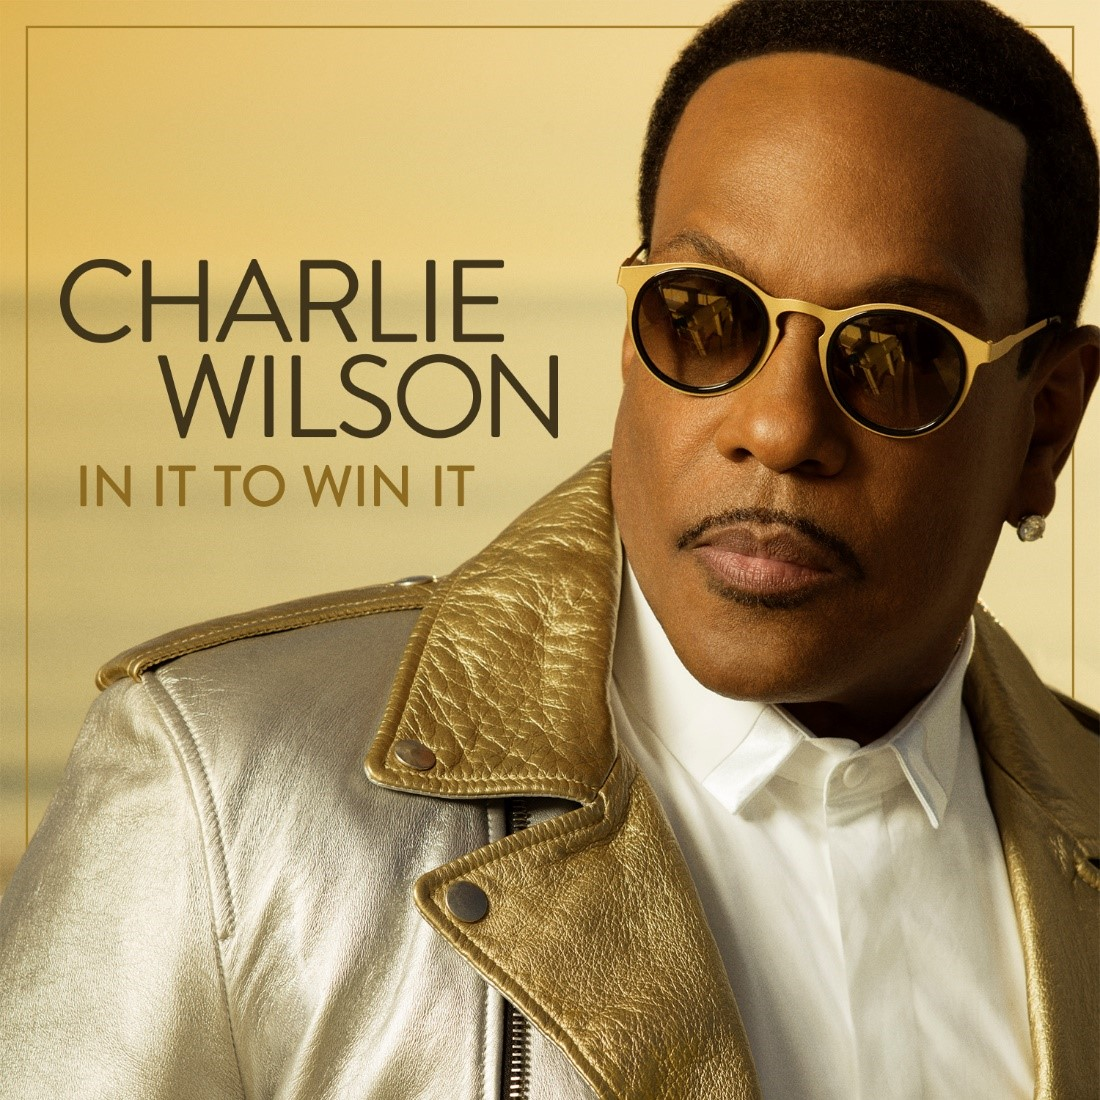 Charlie Wilson In It to Win It Album Cover